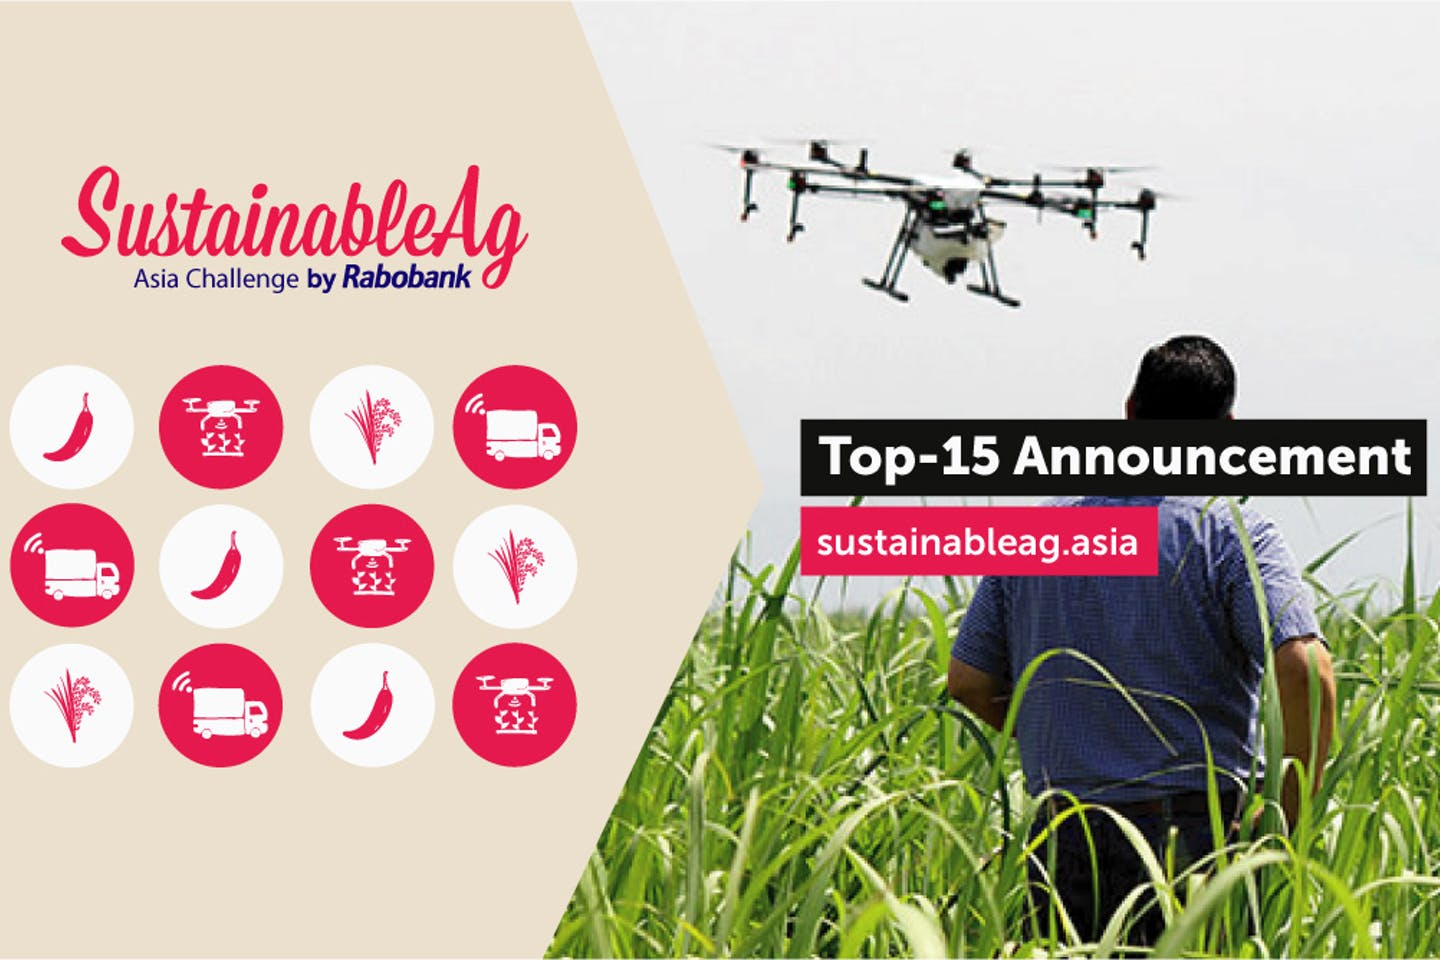 Rabobank announces 15 Agri-tech Start-ups and Innovators  for SustainableAg Asia Challenge